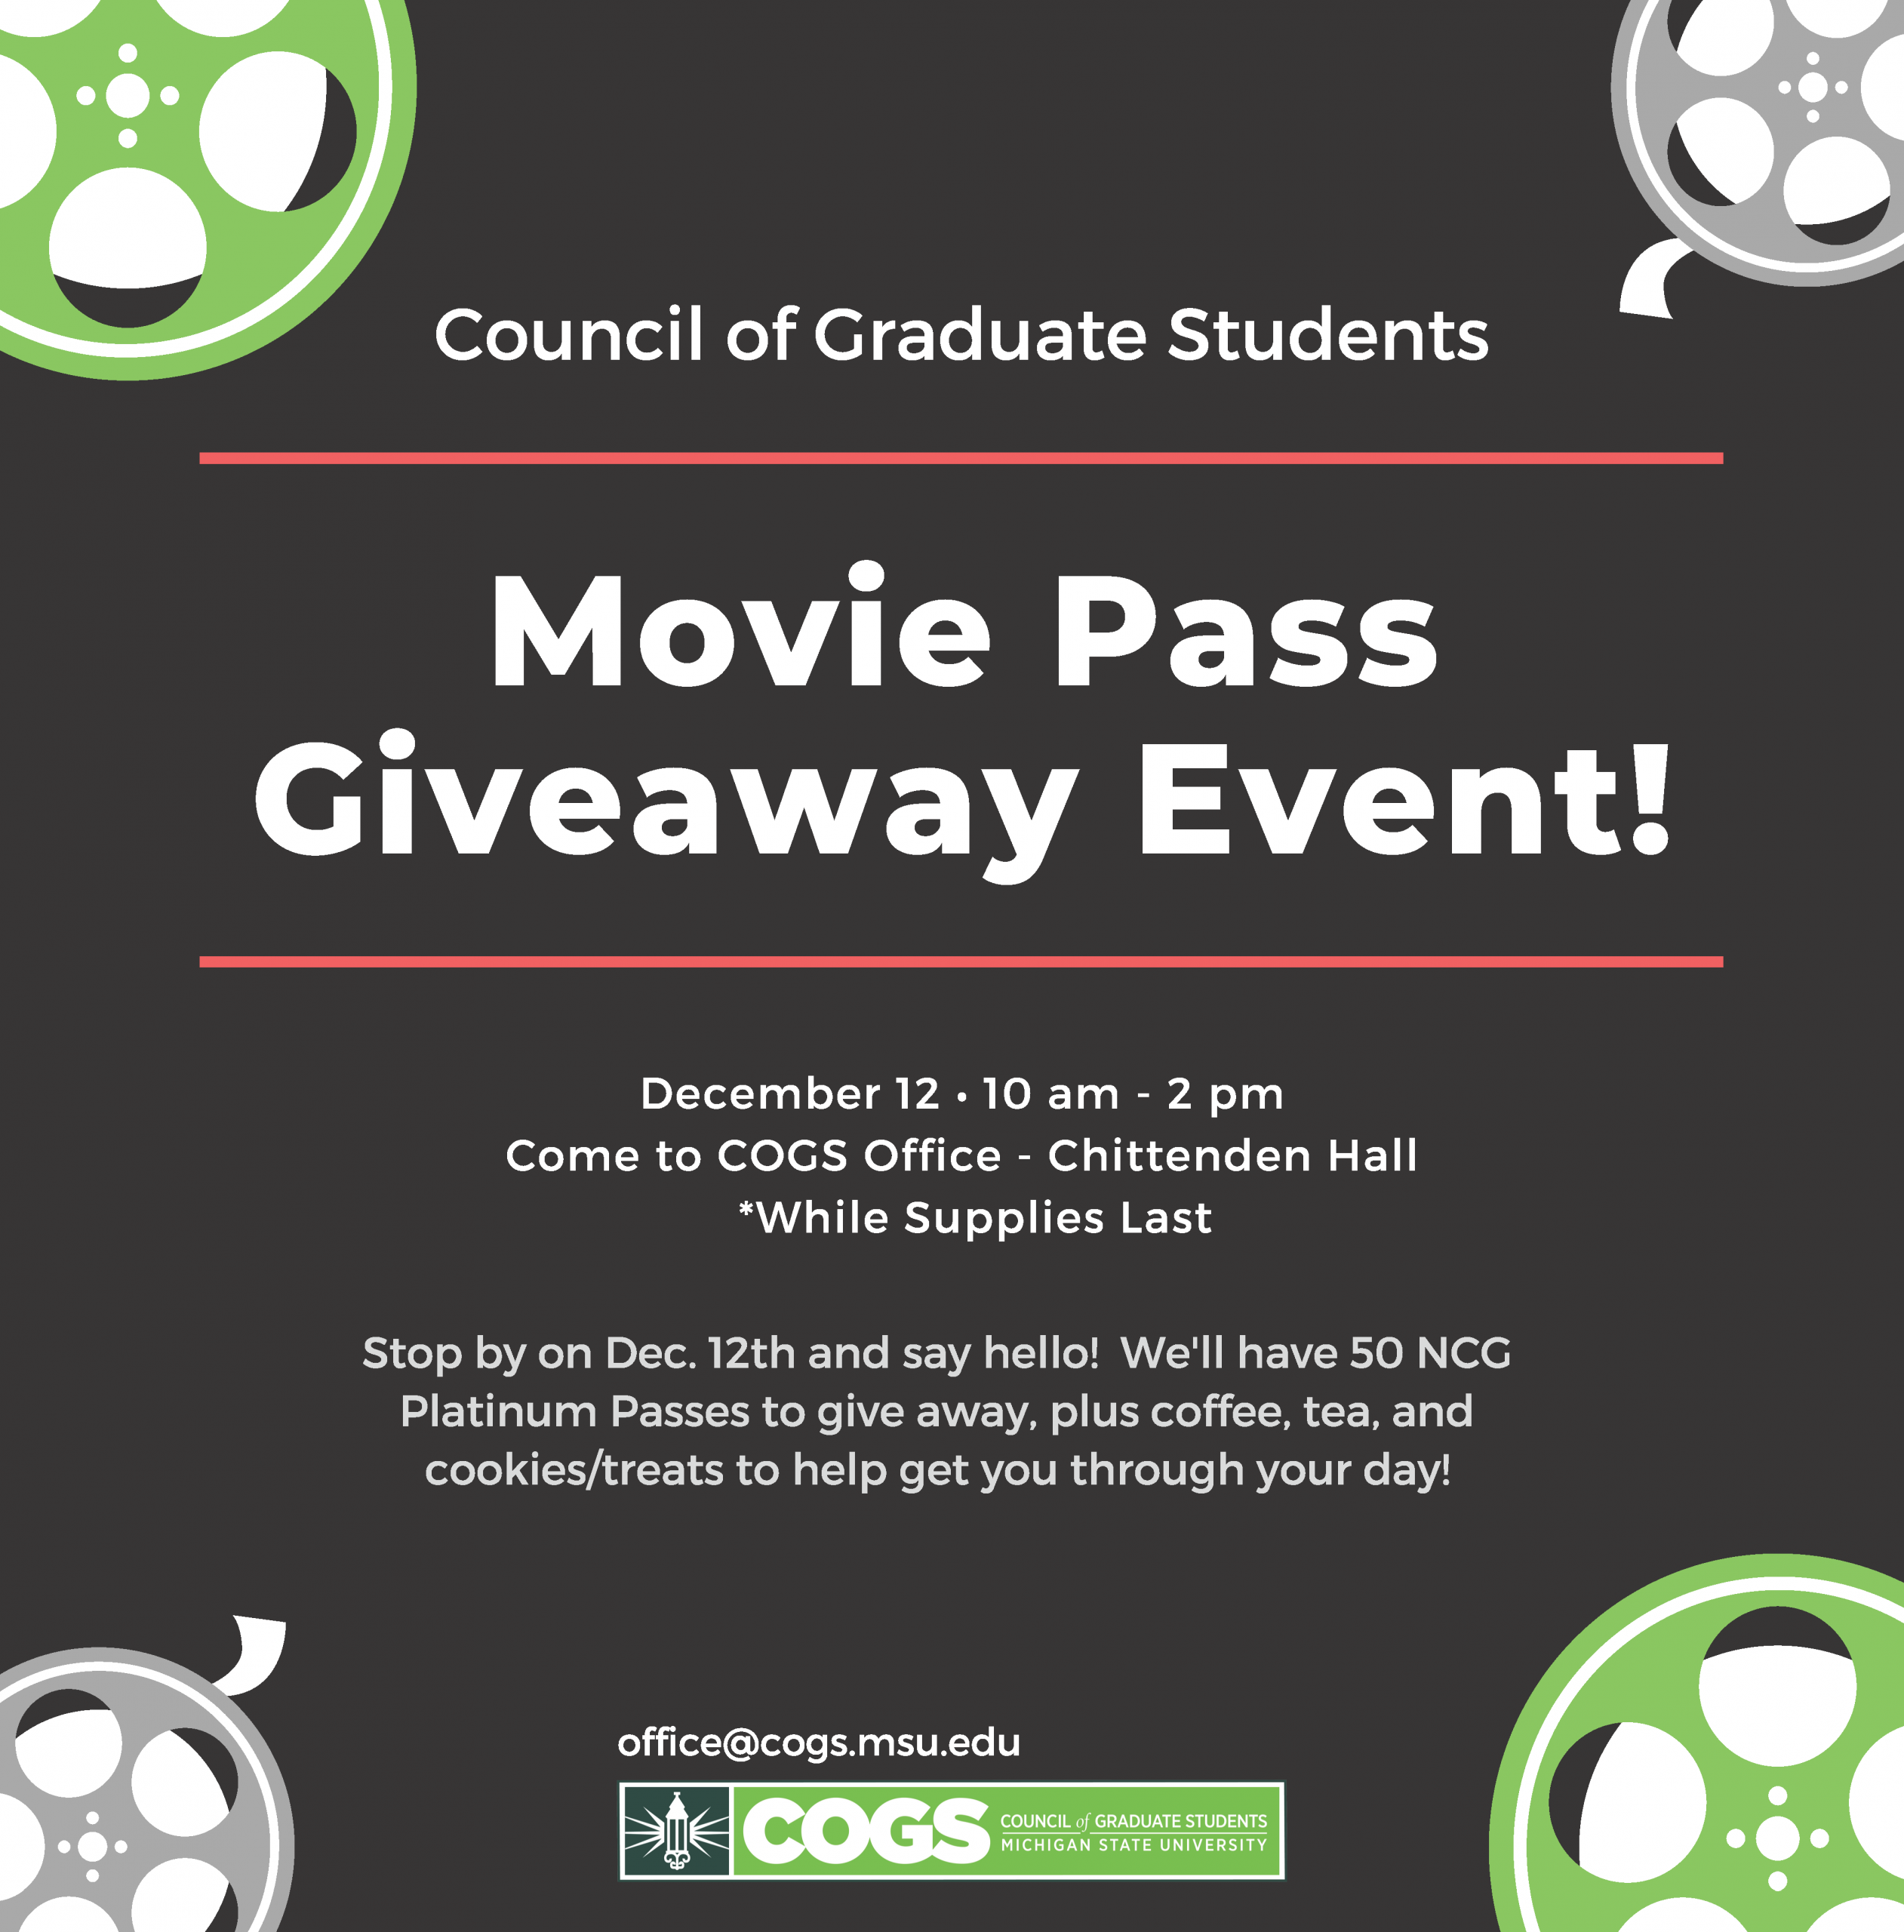 Movie Pass giveaway flyer